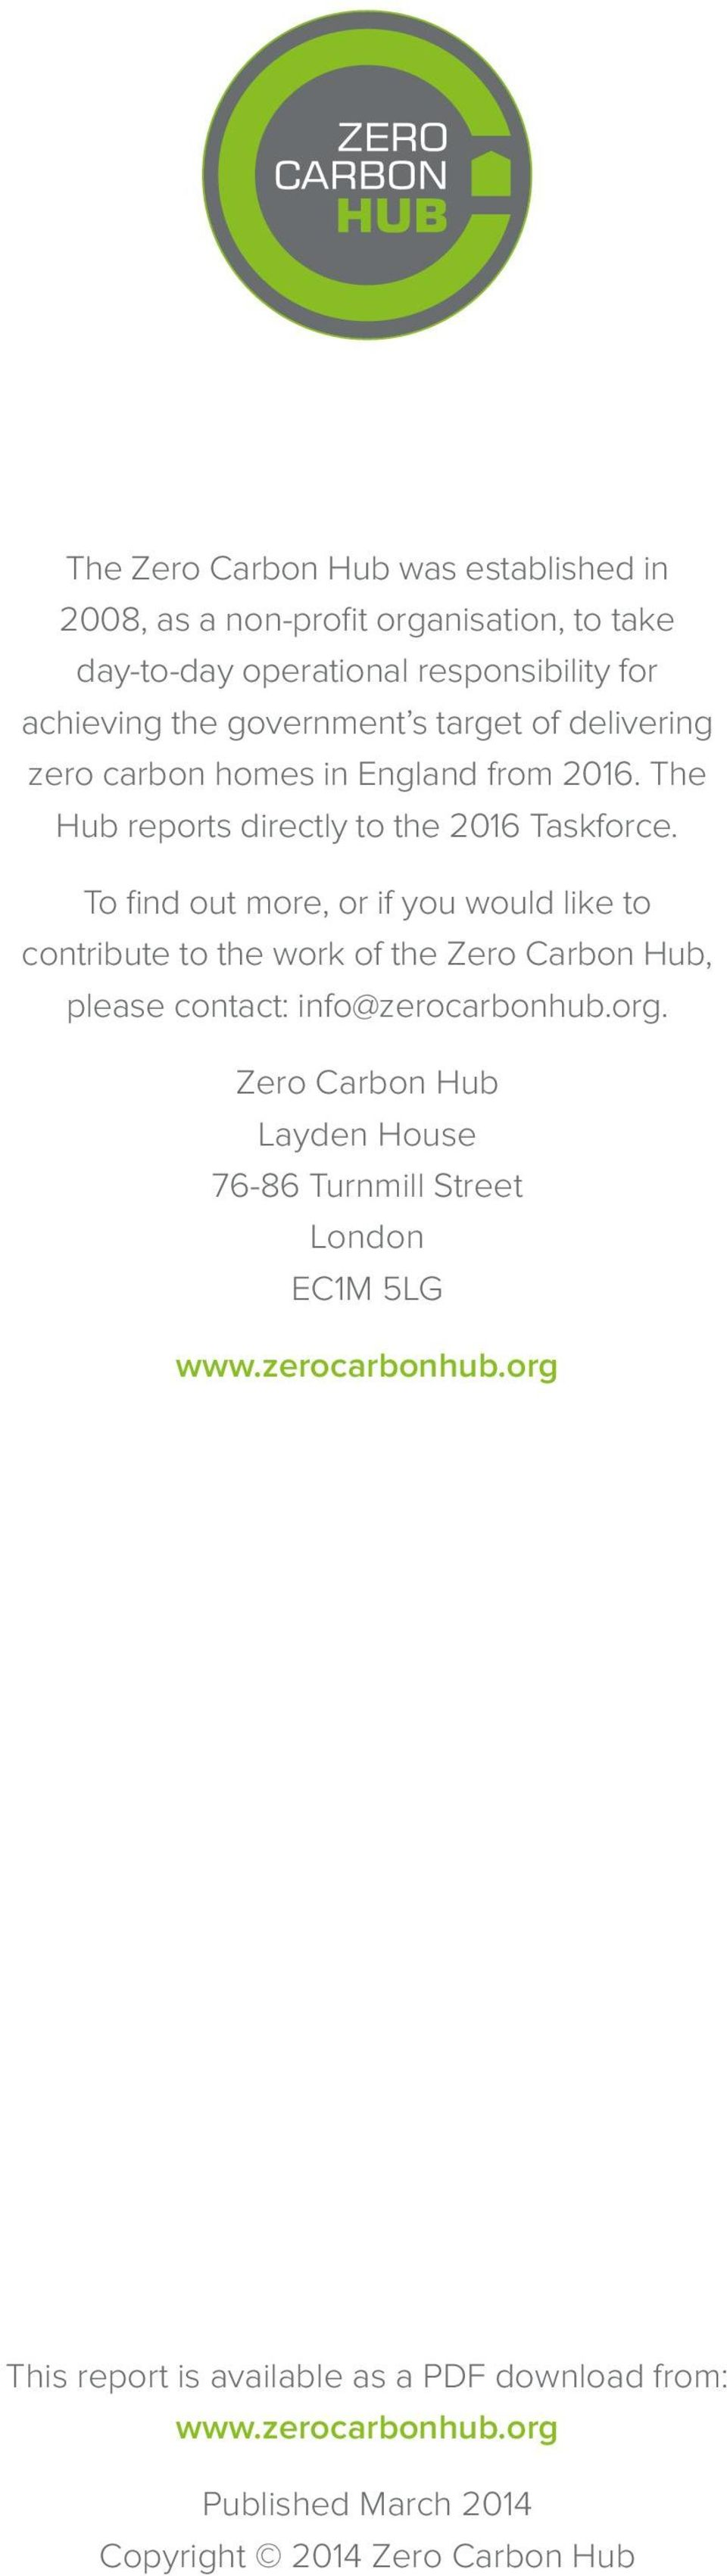 To find out more, or if you would like to contribute to the work of the Zero Carbon Hub, please contact: info@zerocarbonhub.org.